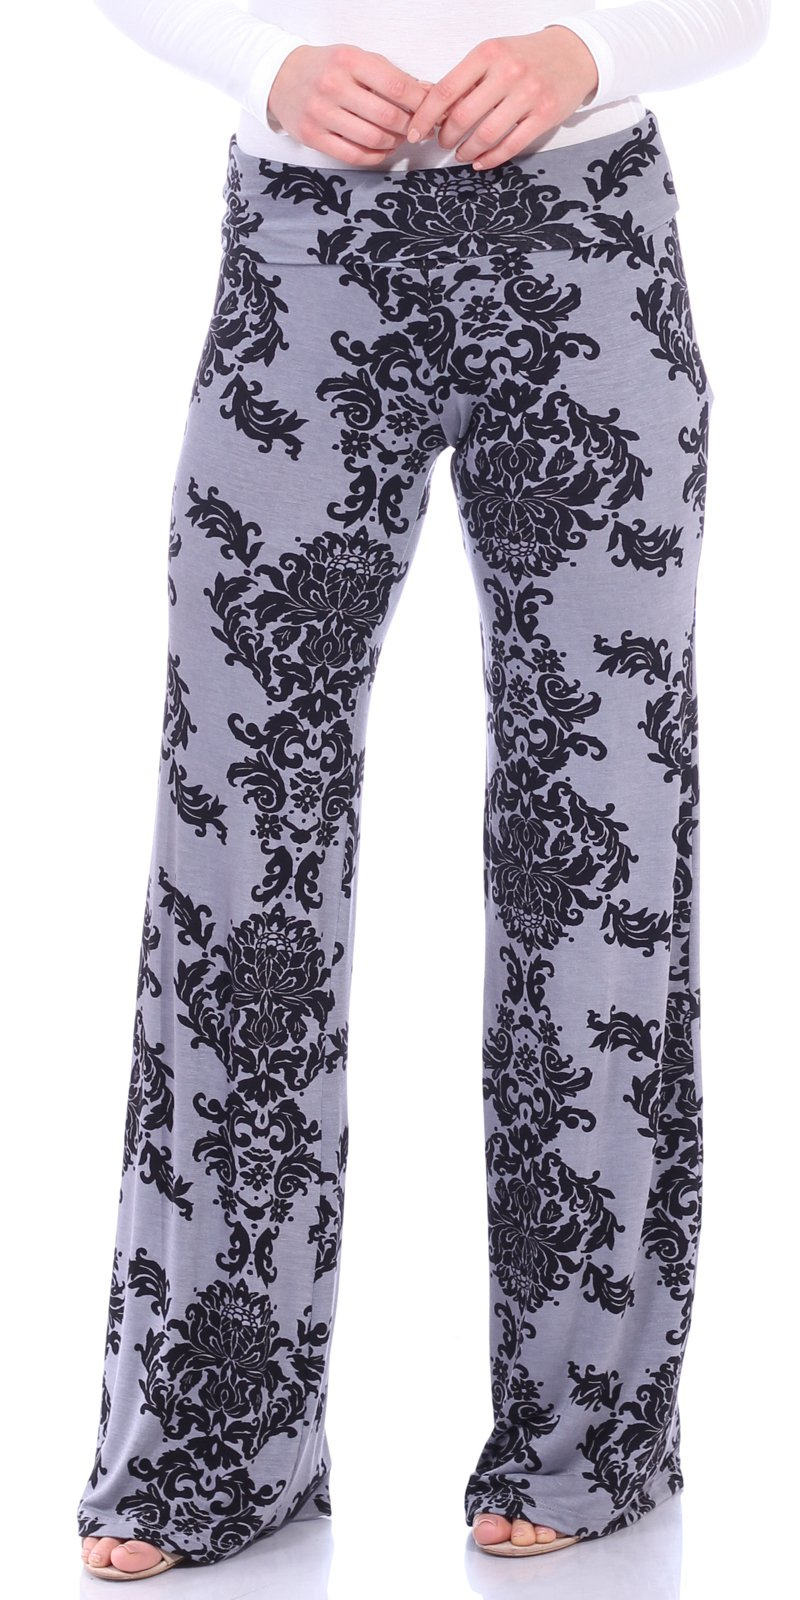 Popana Women's Casual Wide Leg Boho Flare Floral Print Palazzo Pants Made In USA Medium Gray Damask